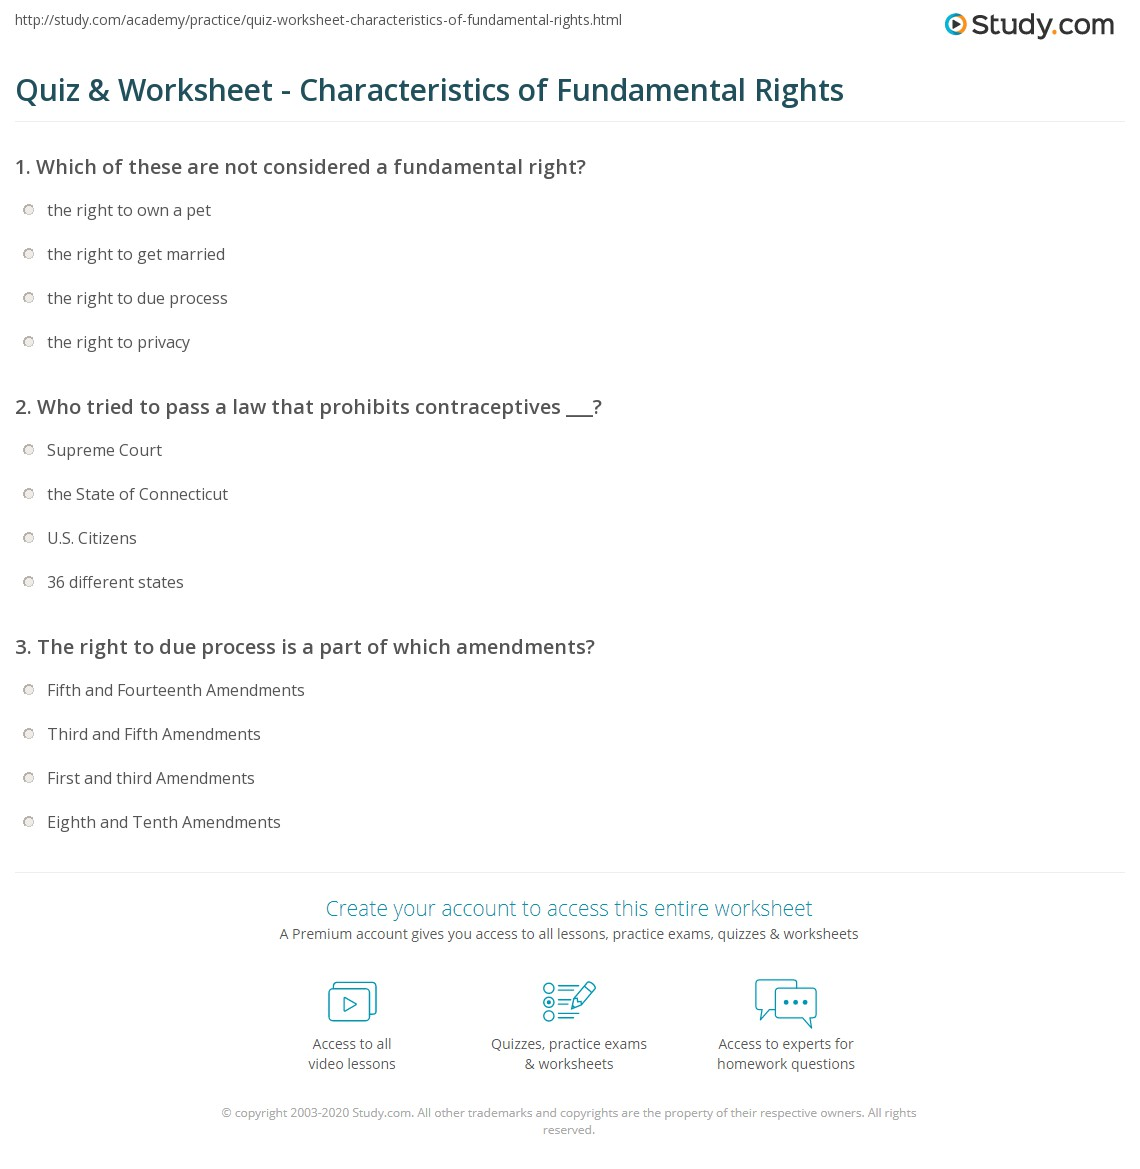 Aldiablosus  Winning Quiz Amp Worksheet  Characteristics Of Fundamental Rights  Studycom With Luxury Print What Are Fundamental Rights  Definition Types Amp Features Worksheet With Enchanting Printable Distributive Property Worksheets Also Reading And Answering Questions Worksheets In Addition First Grade Halloween Math Worksheets And Prefix Worksheet Pdf As Well As Fun Math Puzzle Worksheets For Middle School Additionally Japanese Learning Worksheets From Studycom With Aldiablosus  Luxury Quiz Amp Worksheet  Characteristics Of Fundamental Rights  Studycom With Enchanting Print What Are Fundamental Rights  Definition Types Amp Features Worksheet And Winning Printable Distributive Property Worksheets Also Reading And Answering Questions Worksheets In Addition First Grade Halloween Math Worksheets From Studycom